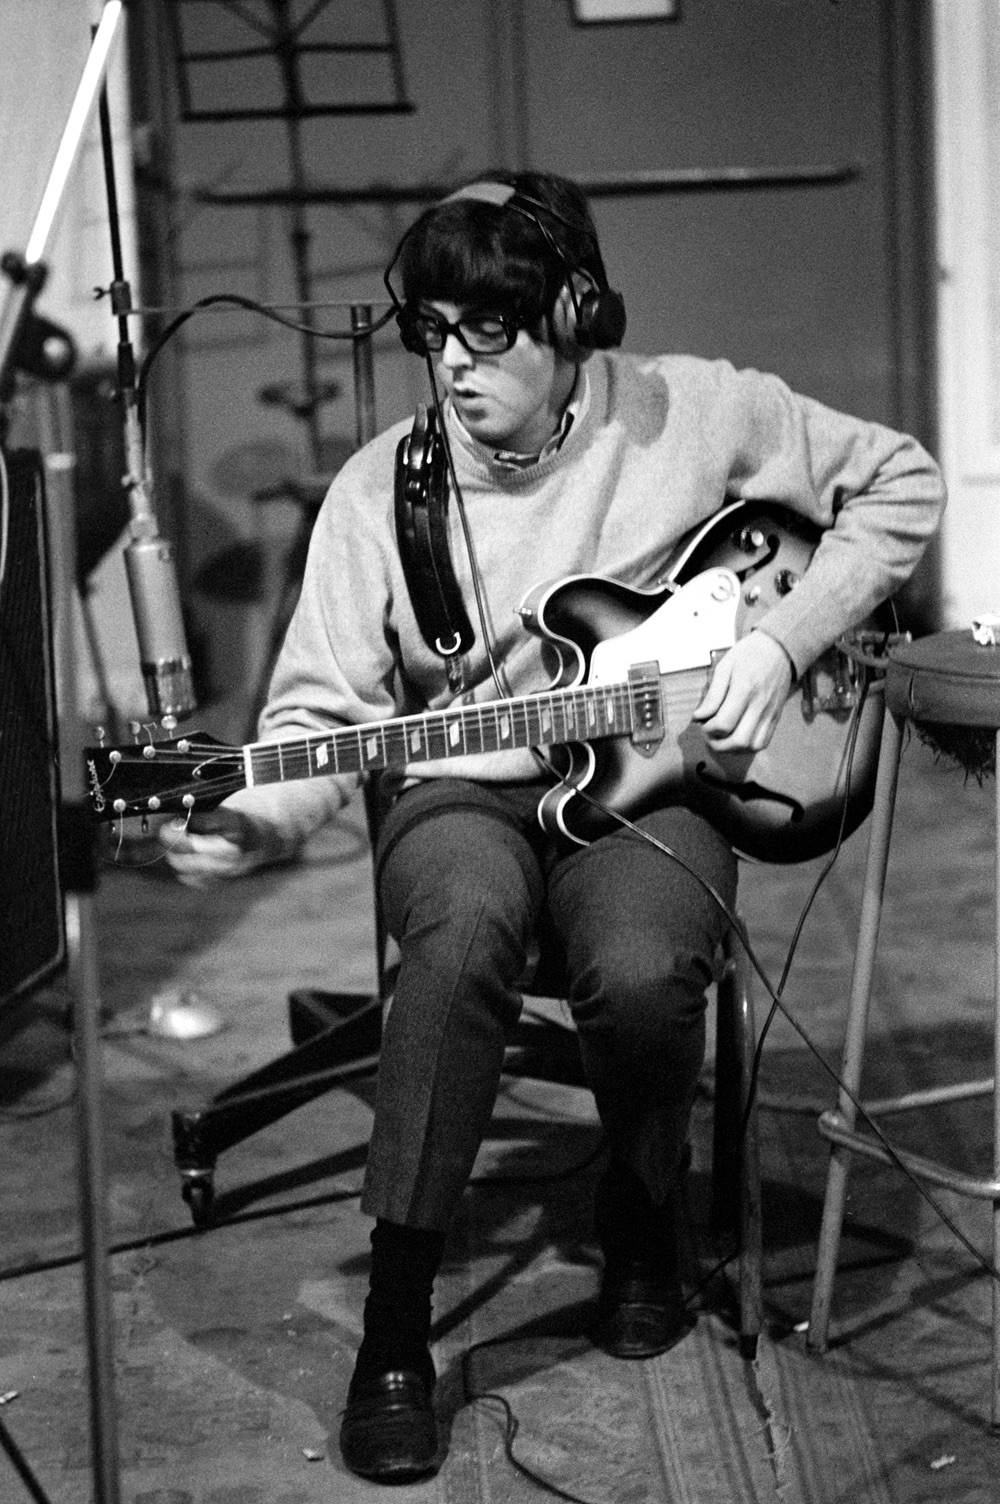 Recording Revolver Beatles By Day